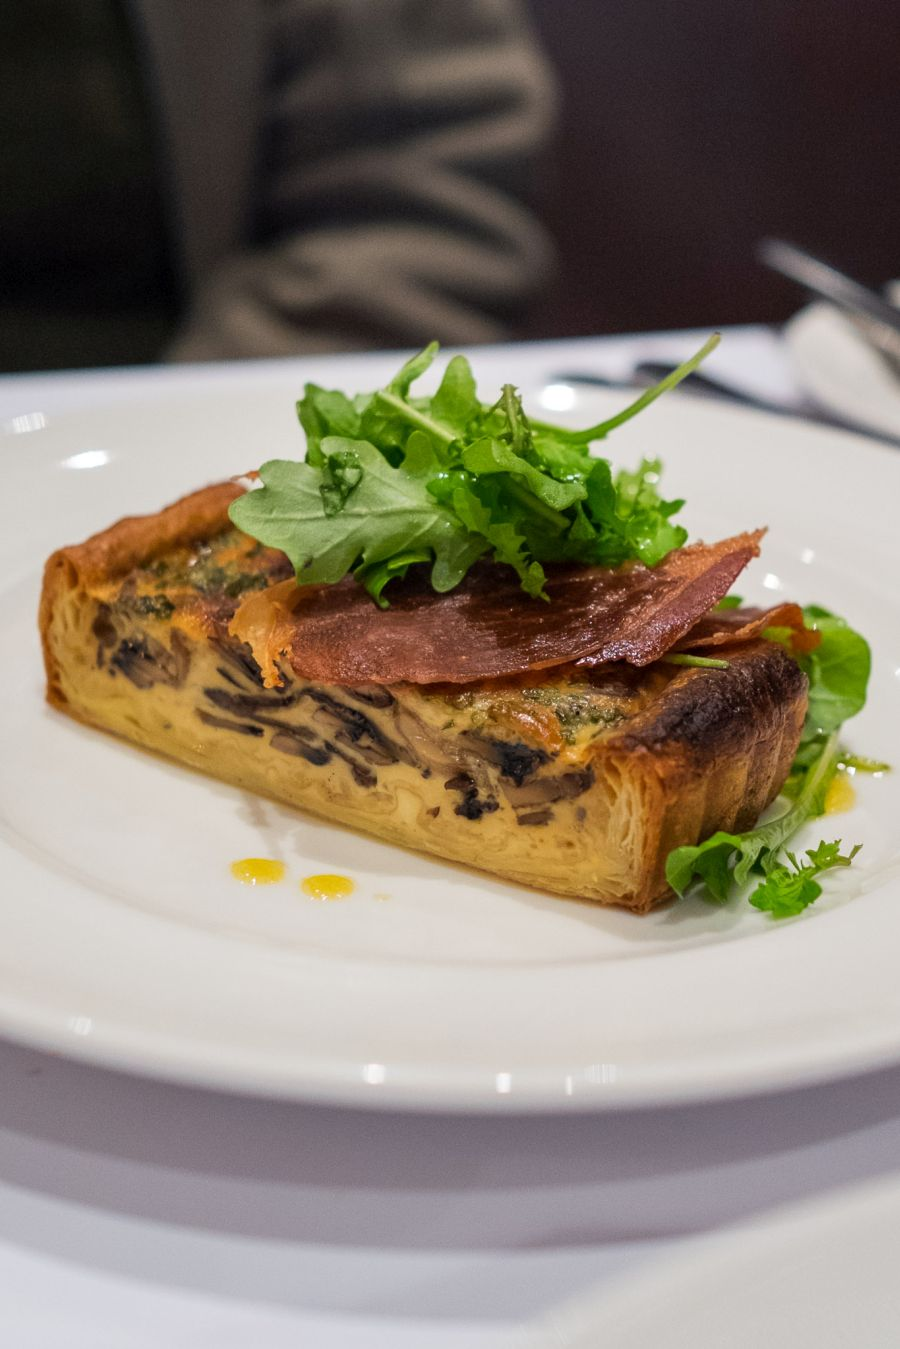 Portobello mushroom tart, rocket & prosciutto salad, red wine vinaigrette